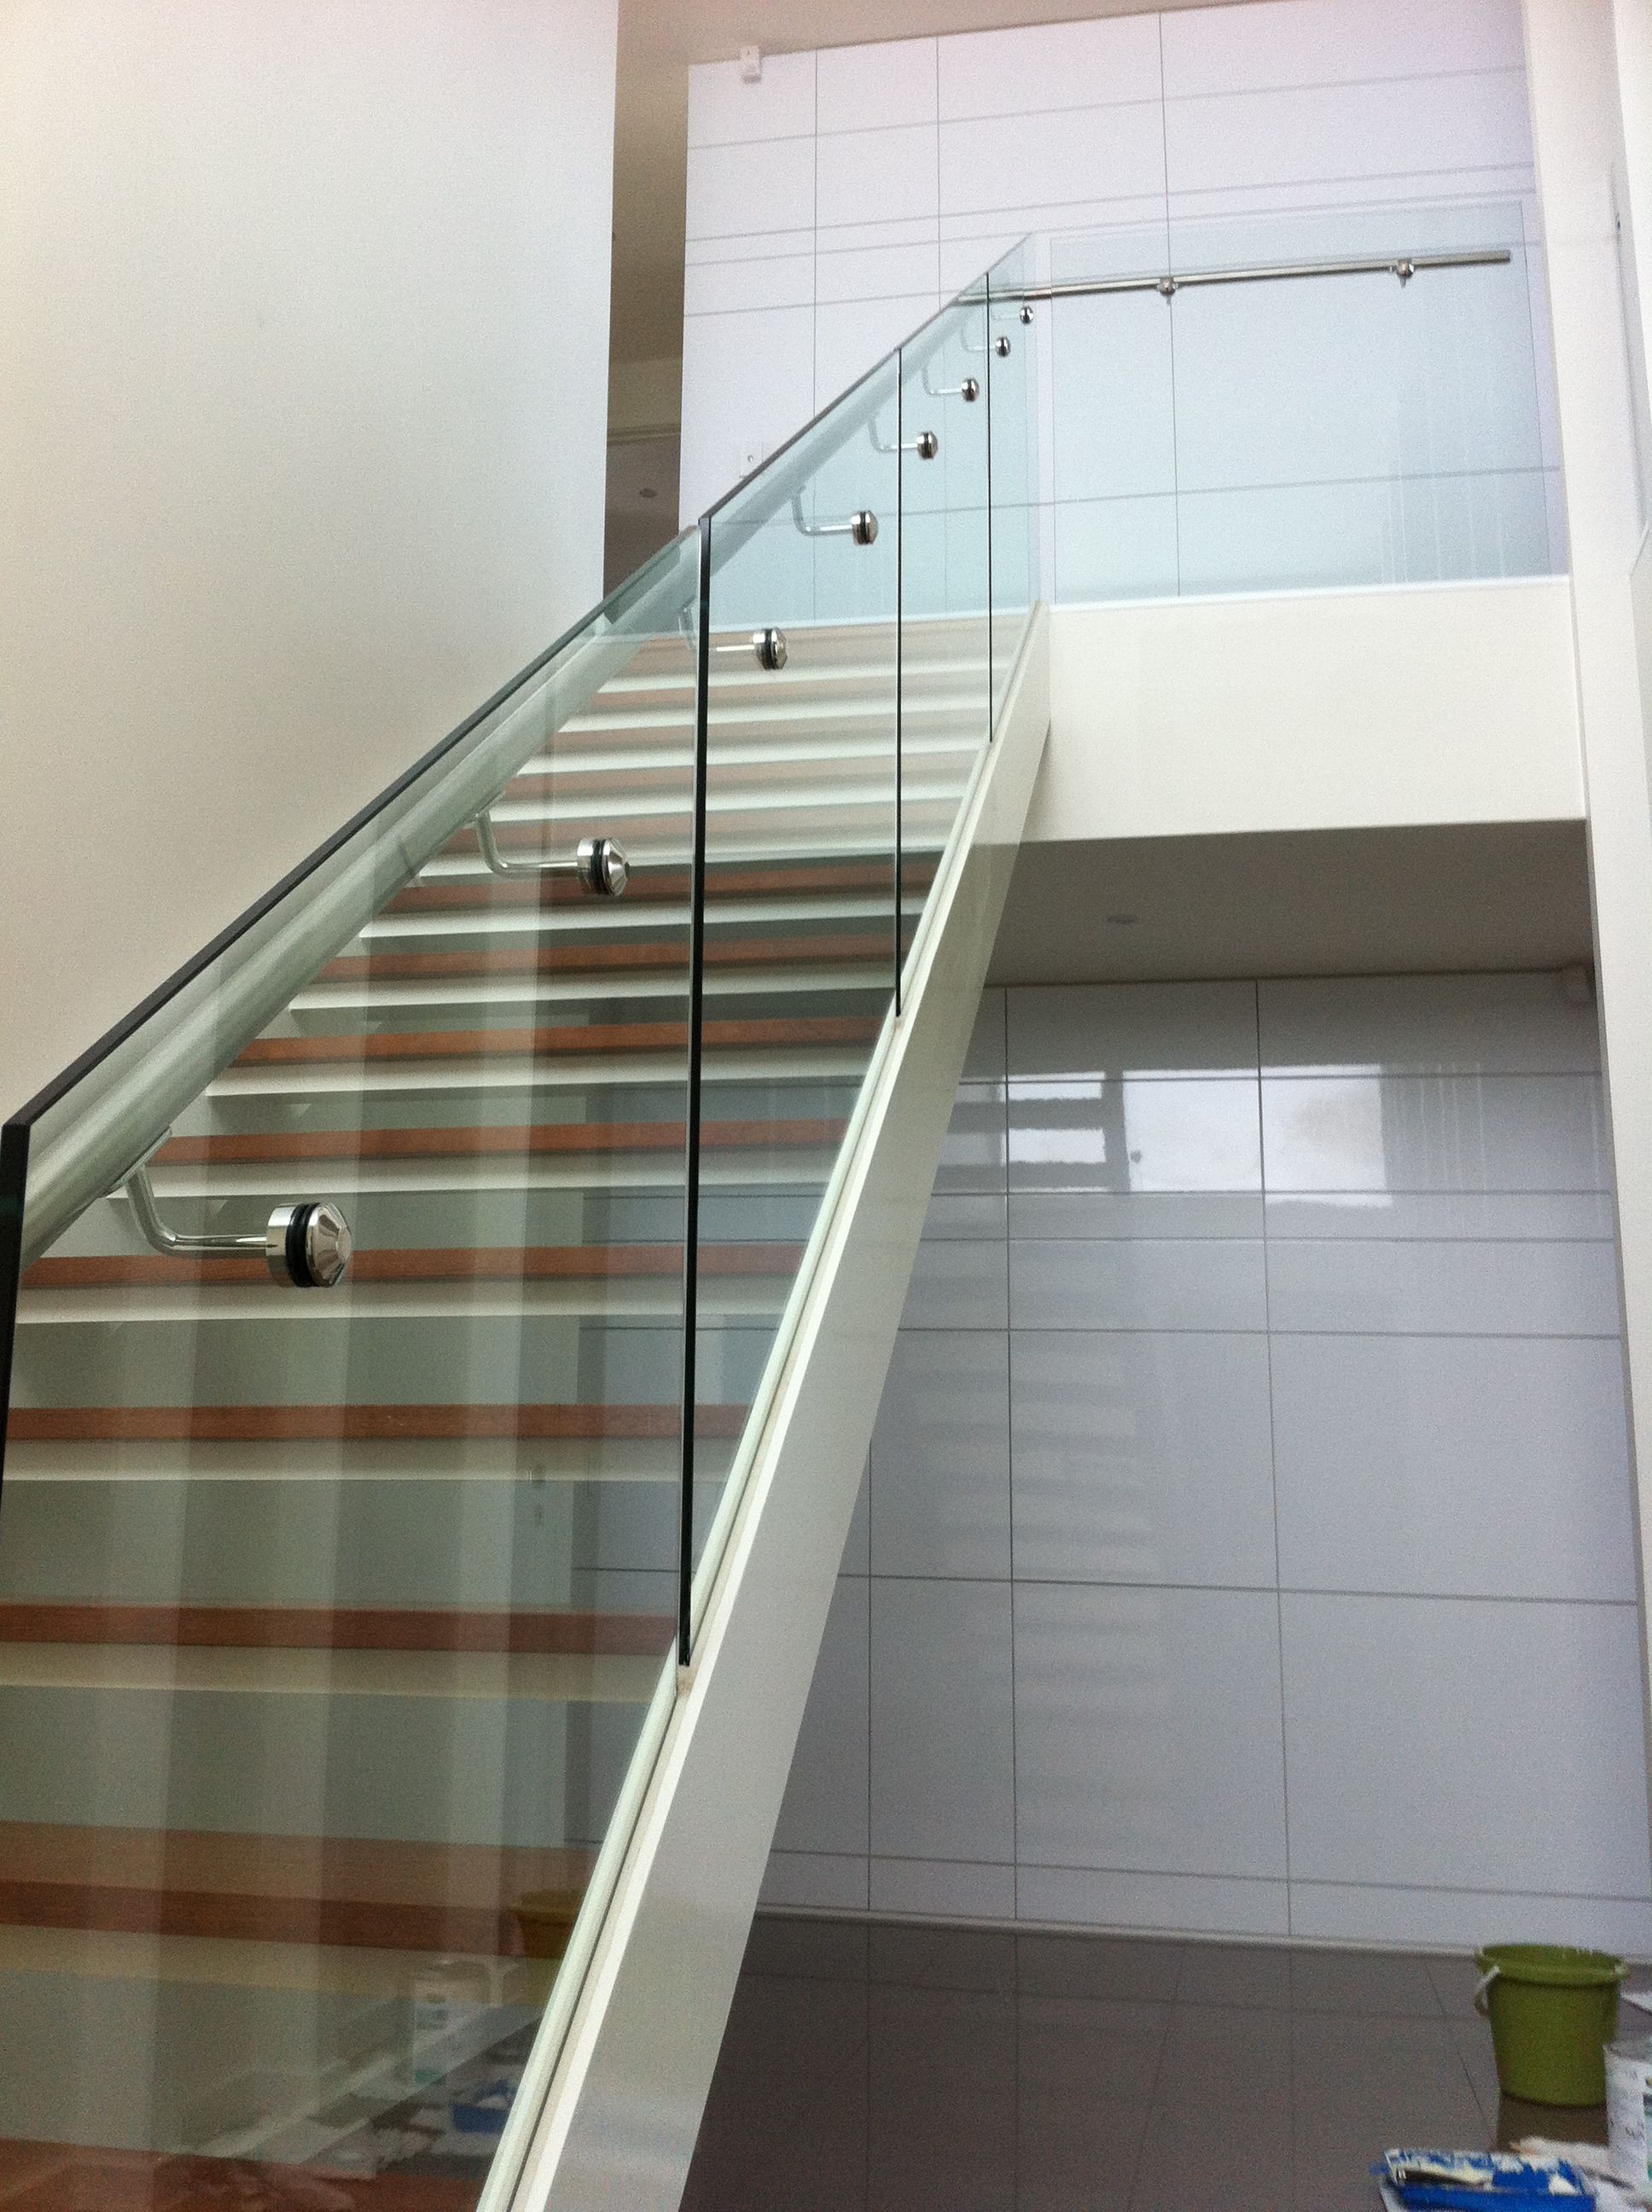 Glass Balustrade For Stairs With Side Mount Stainless | Glass Balusters For Stairs